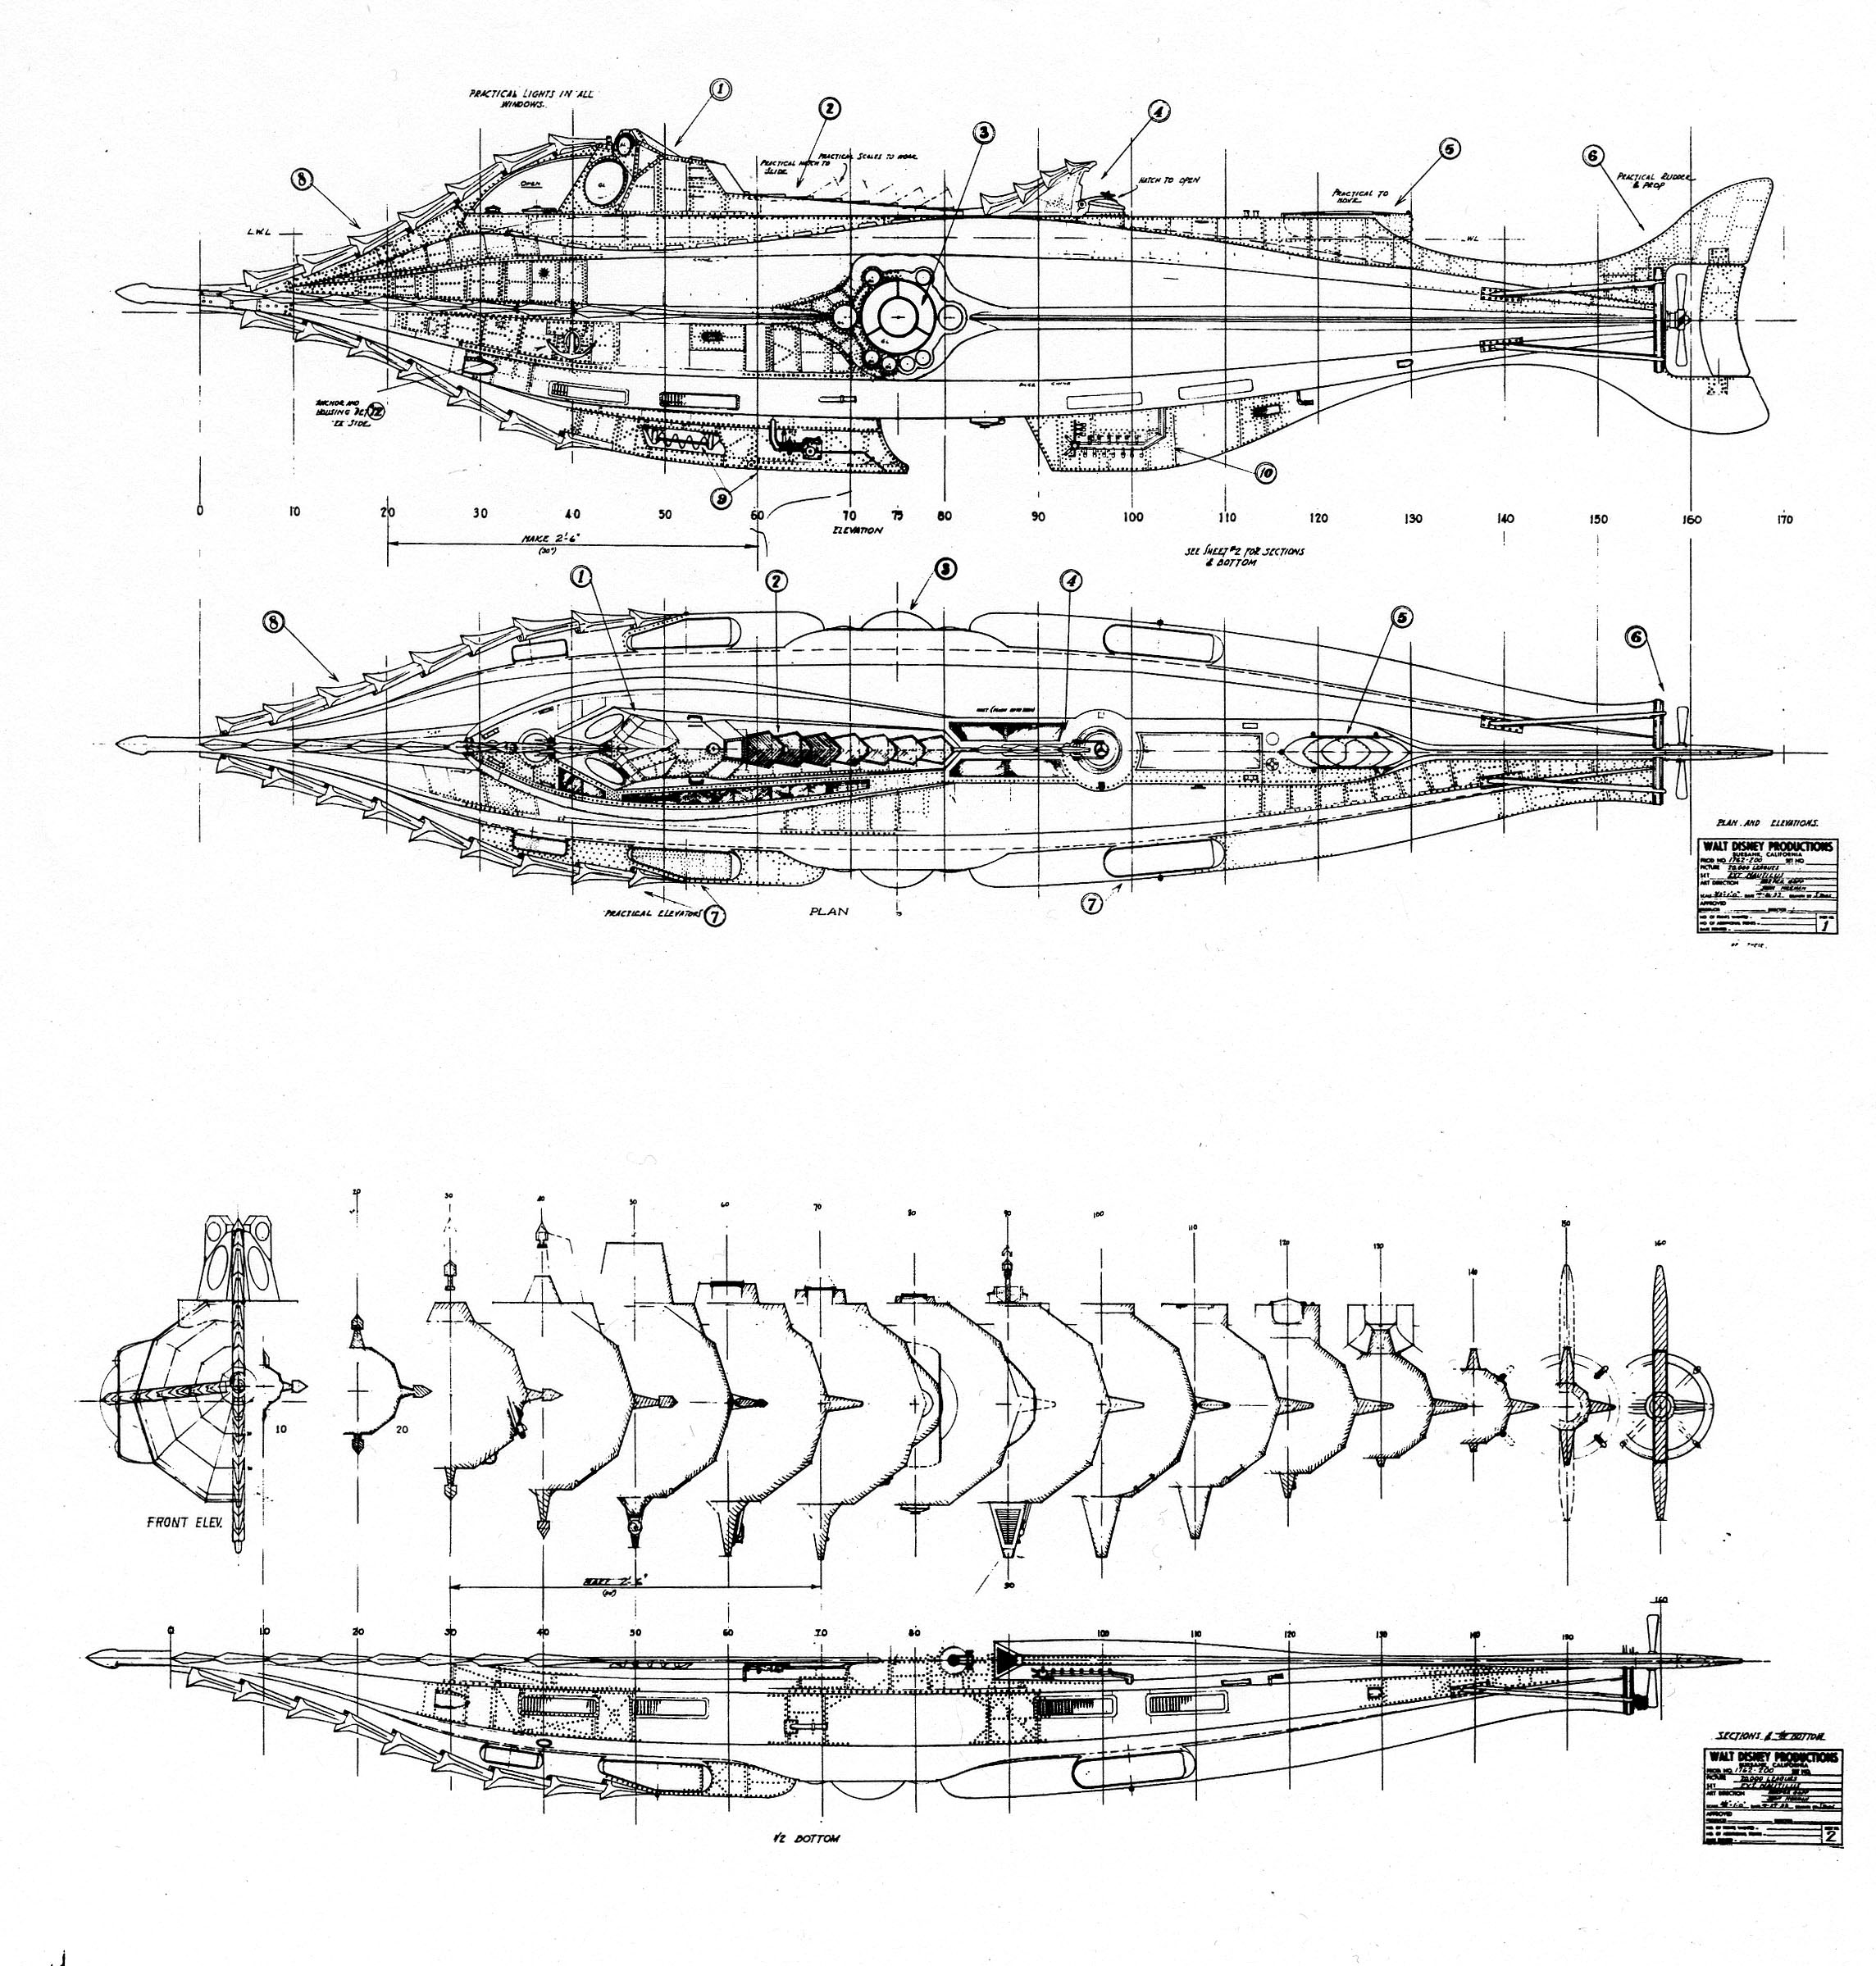 El invencible, The Nautilus. Nautilusentireblueprints